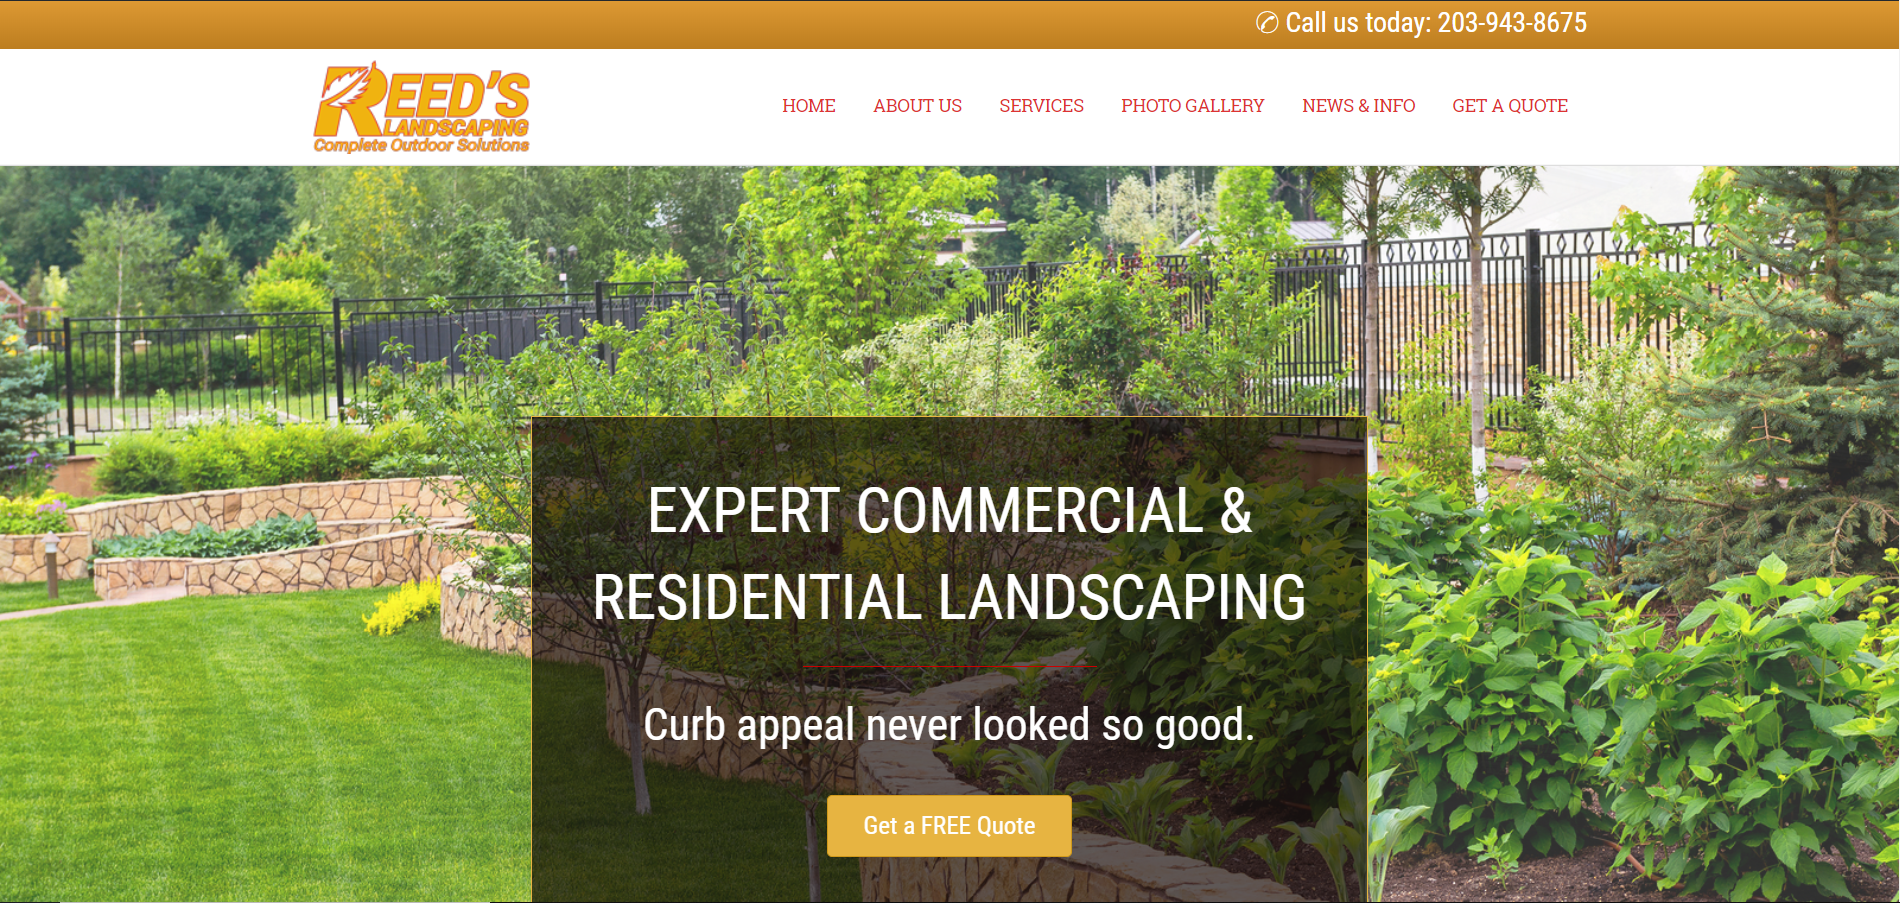 Reeds-landscaping-site-image